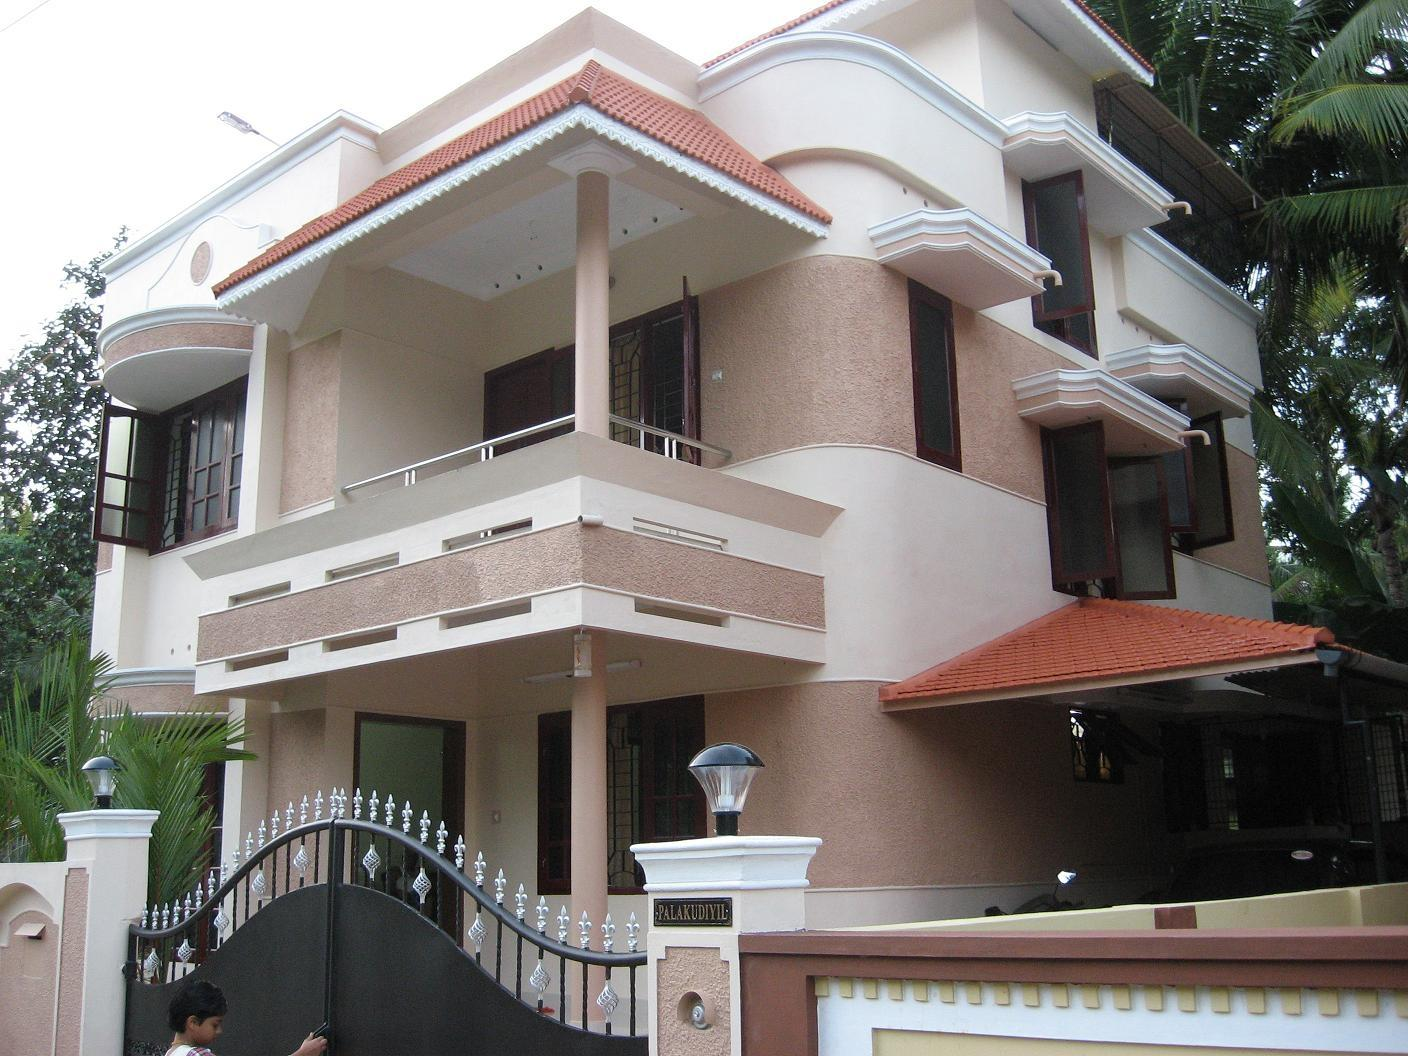 Front Elevation For Houses In Chennai : Front elevation photos of houses in india homedesignpictures